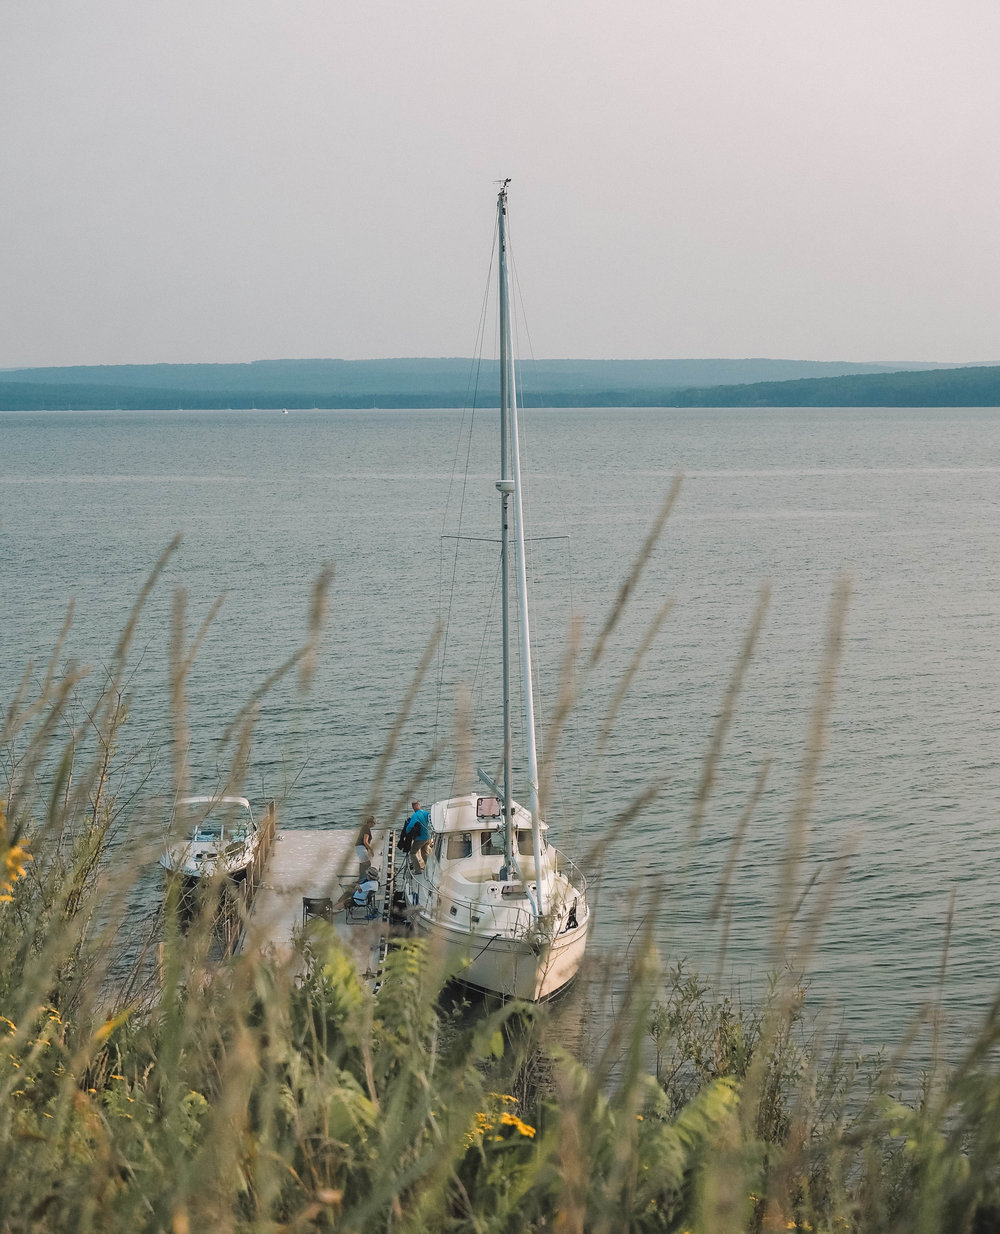 Spend your day sailing the Apostle Islands National Lakeshore in northern Wisconsin. A boat charter will give you access to hiking trails, kayaking routes and the gorgeous Apostle Islands sea caves. #apostleislands #wisconsin #lakesuperior #sailing